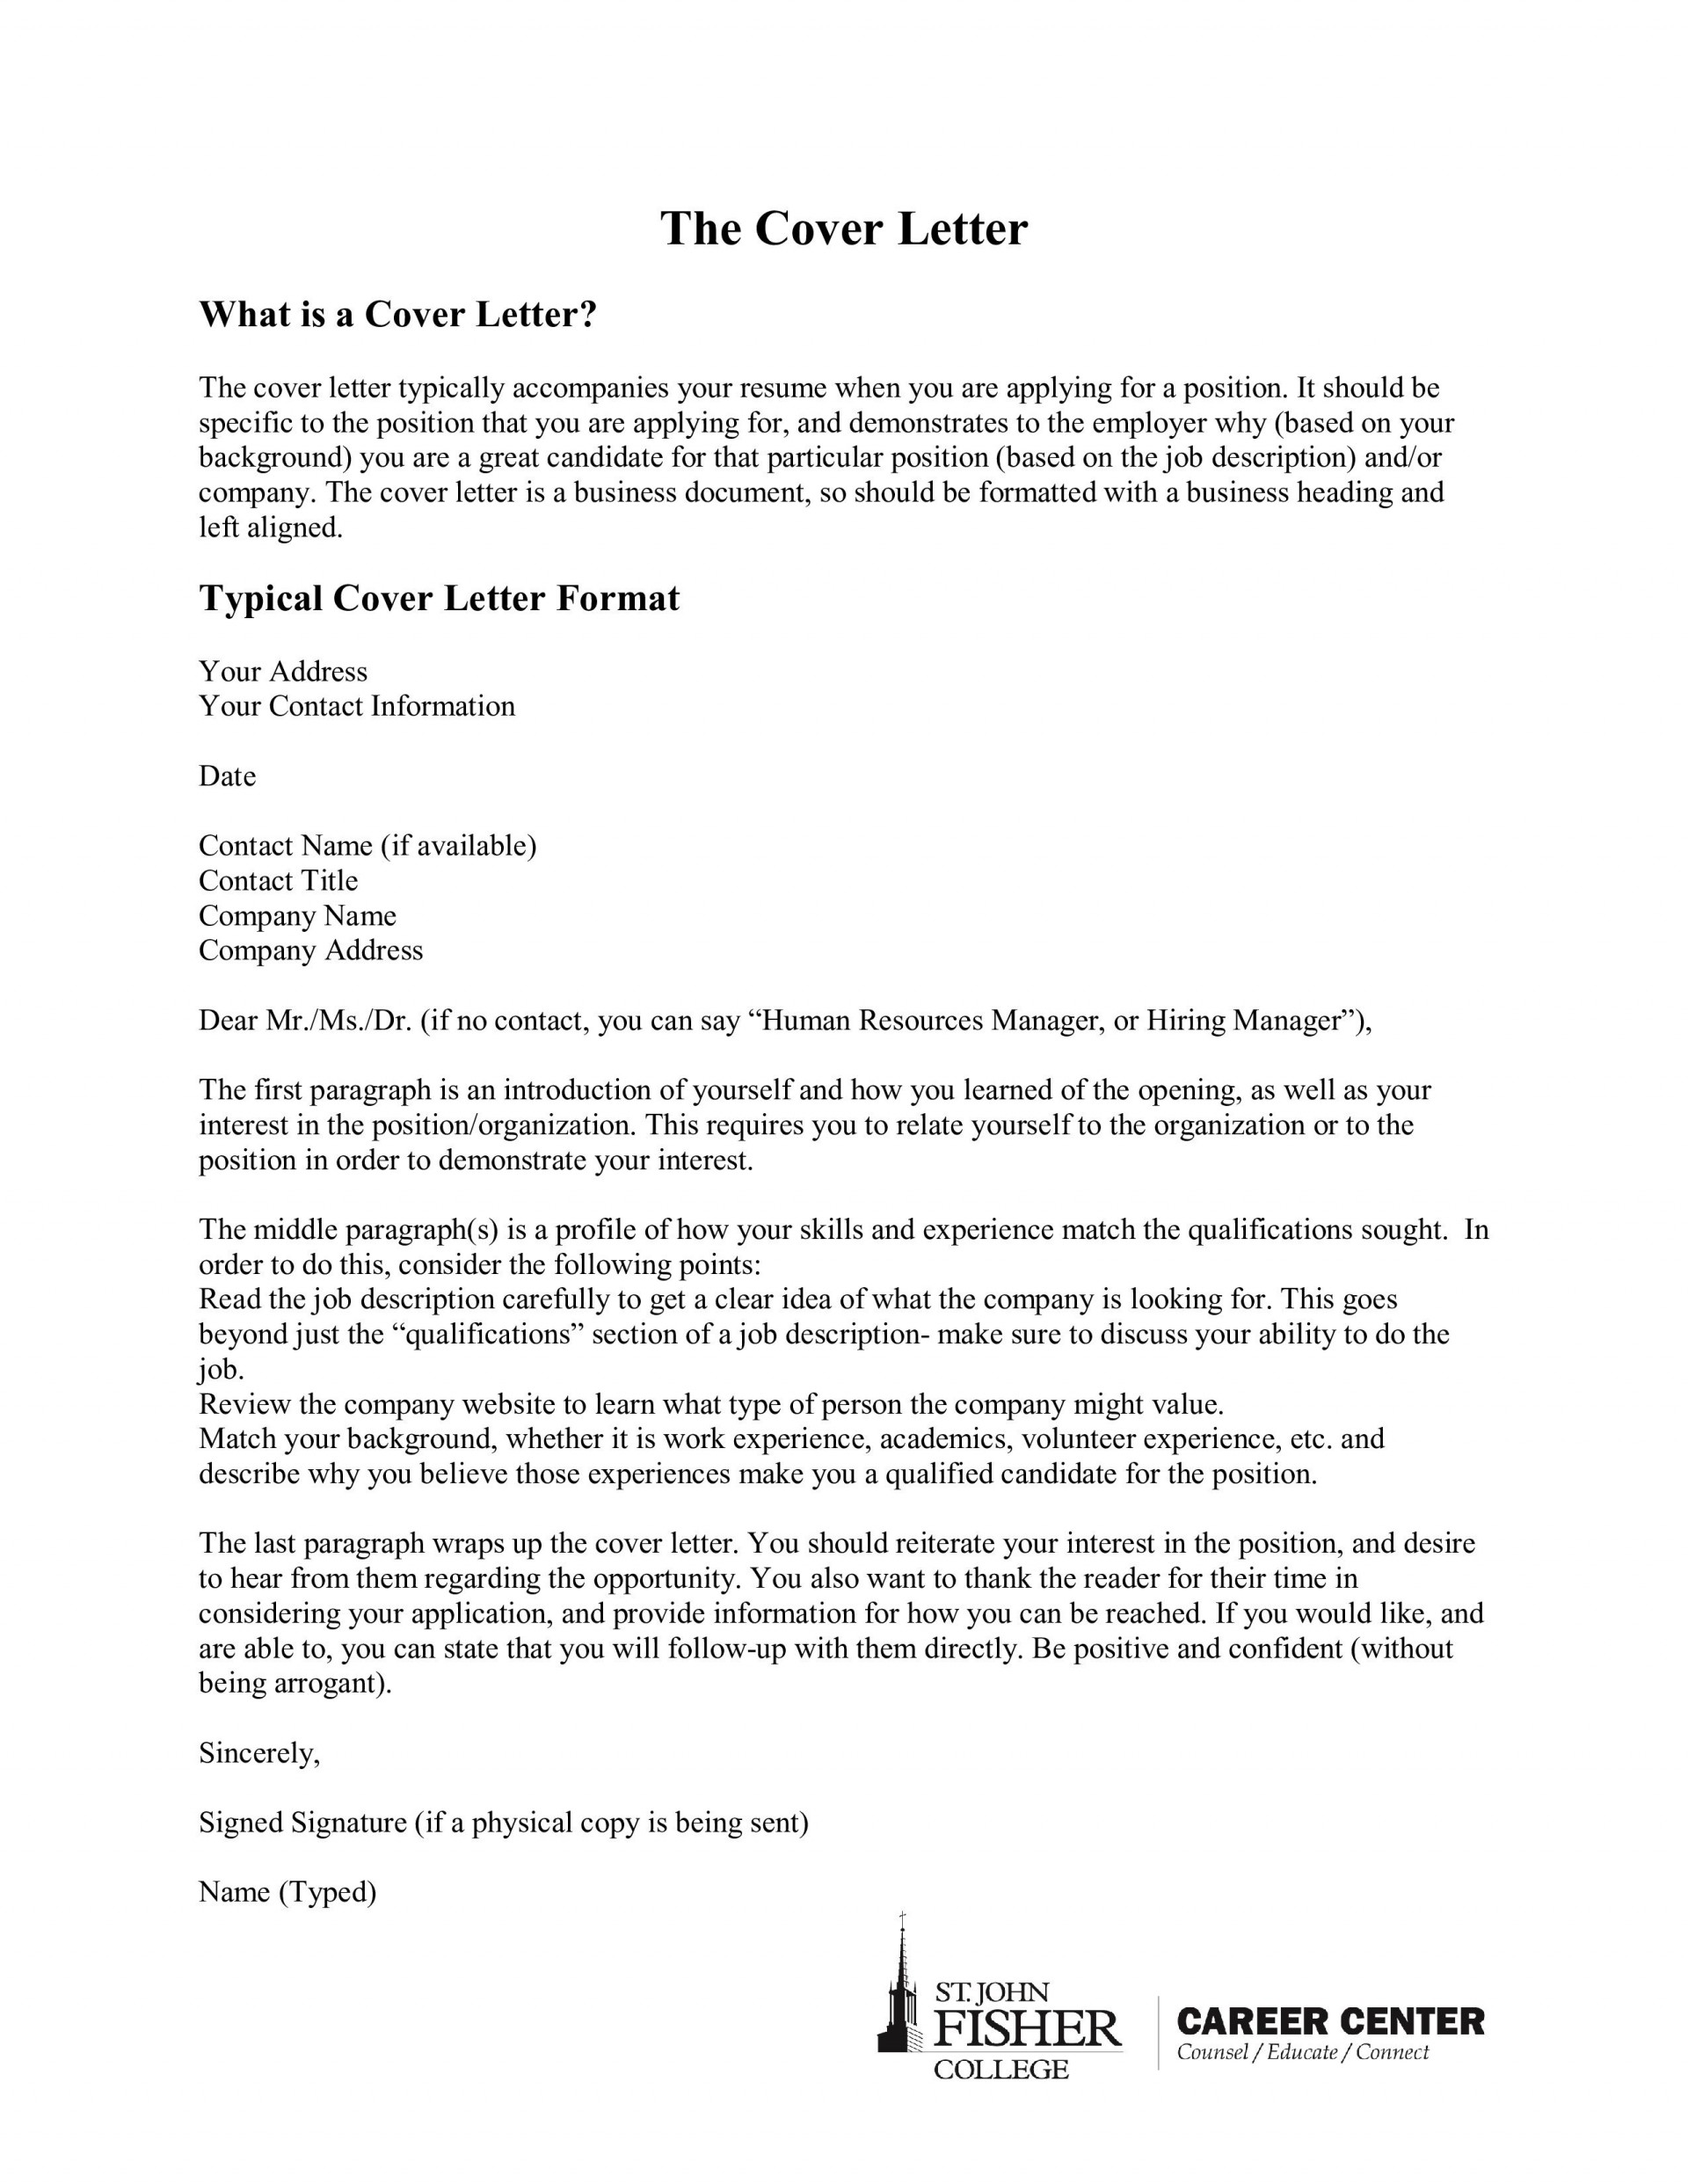 003 Unusual Cover Letter Template Internship Highest Quality  Example Marketing Position For Civil Engineering1920